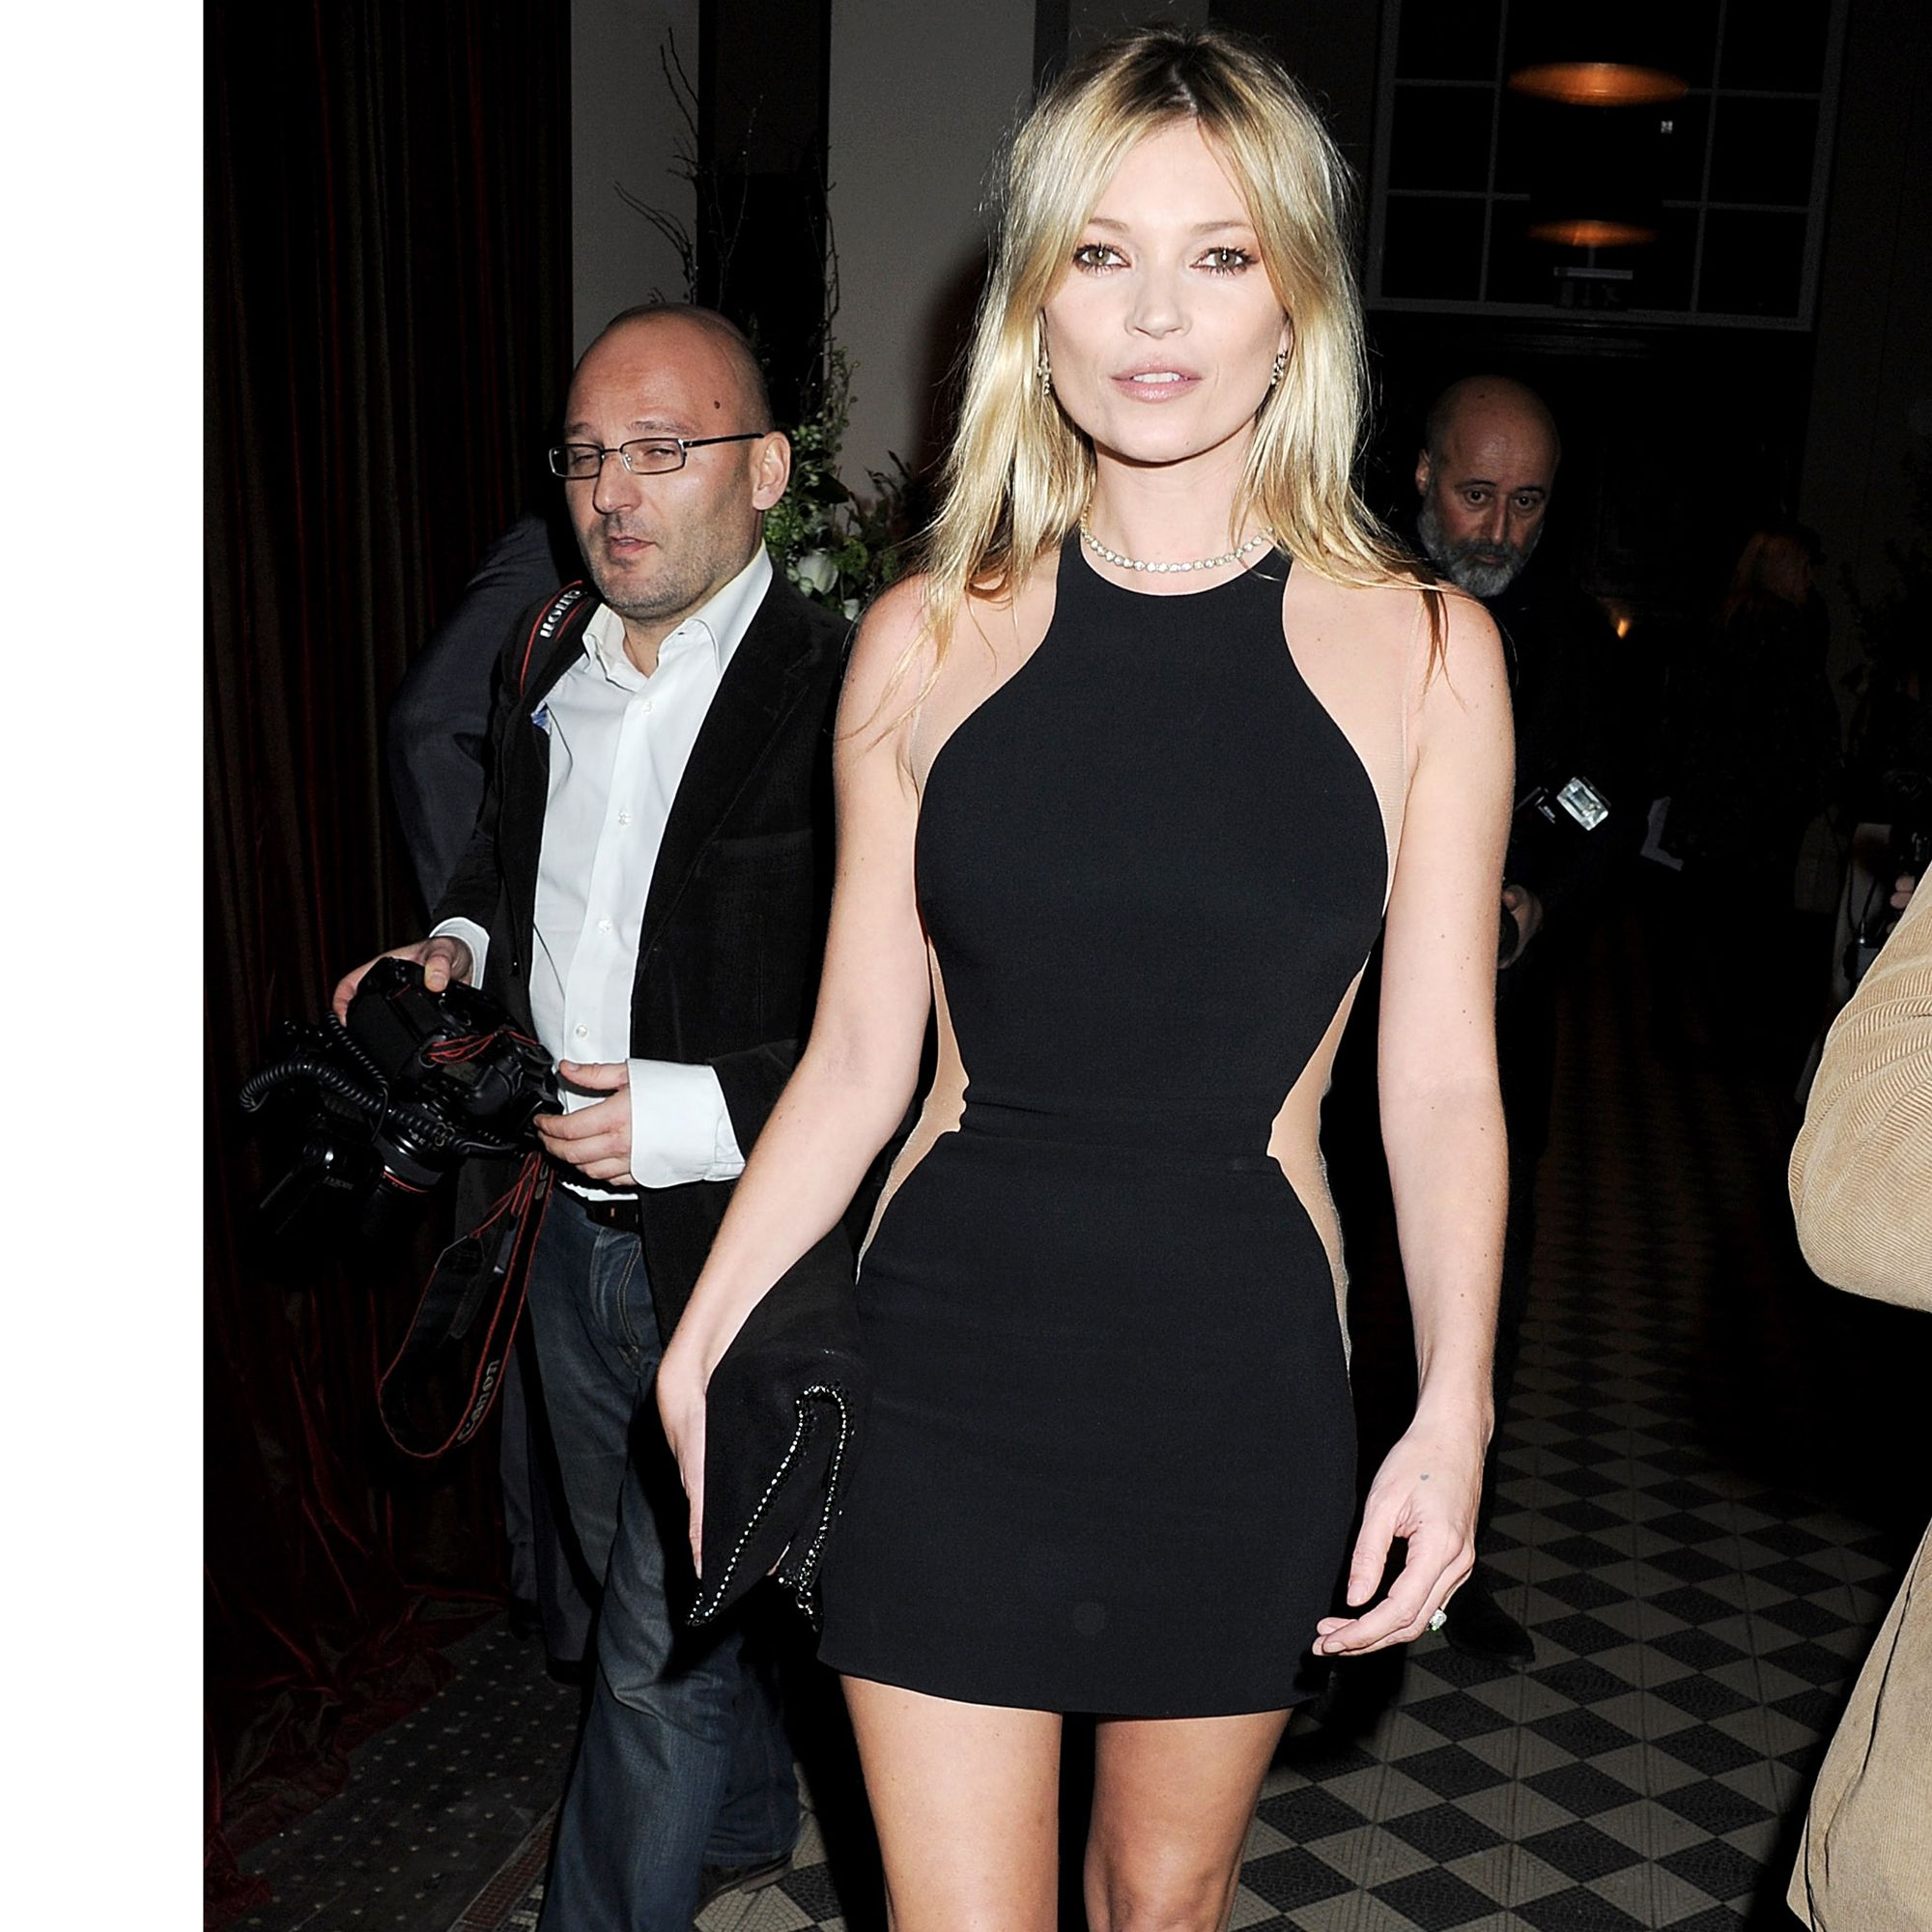 LONDON, ENGLAND - FEBRUARY 18:  (EMBARGOED FOR PUBLICATION IN UK TABLOID NEWSPAPERS UNTIL 48 HOURS AFTER CREATE DATE AND TIME. MANDATORY CREDIT PHOTO BY DAVE M. BENETT/GETTY IMAGES REQUIRED)  Kate Moss attends a cocktail reception at the Stella McCartney Special Presentation during London Fashion Week Autumn/Winter 2012 a One Mayfair on February 18, 2012 in London, England.  (Photo by Dave M. Benett/Getty Images)